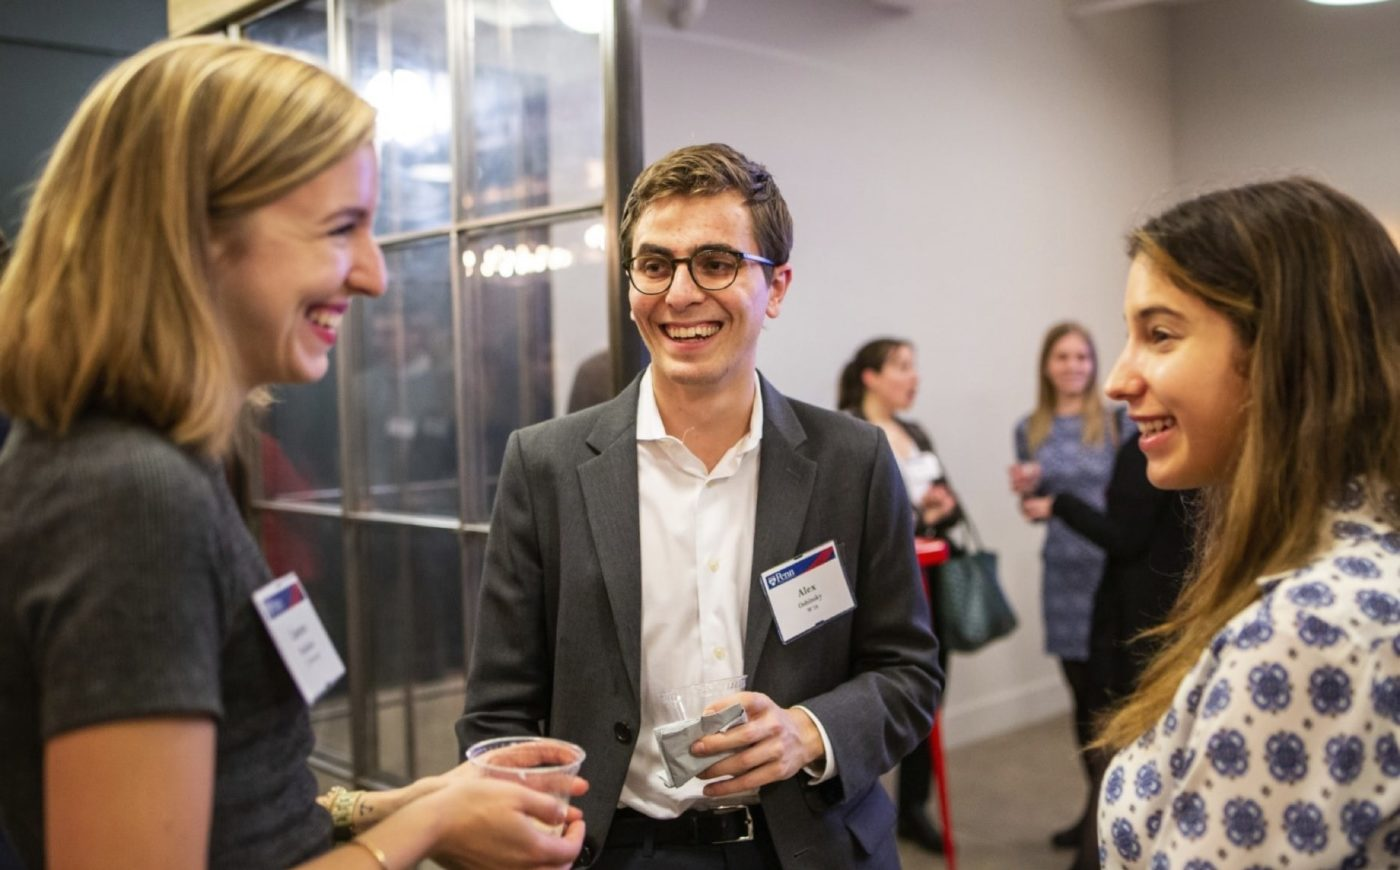 Young Alumni talking and laughing at NYC event